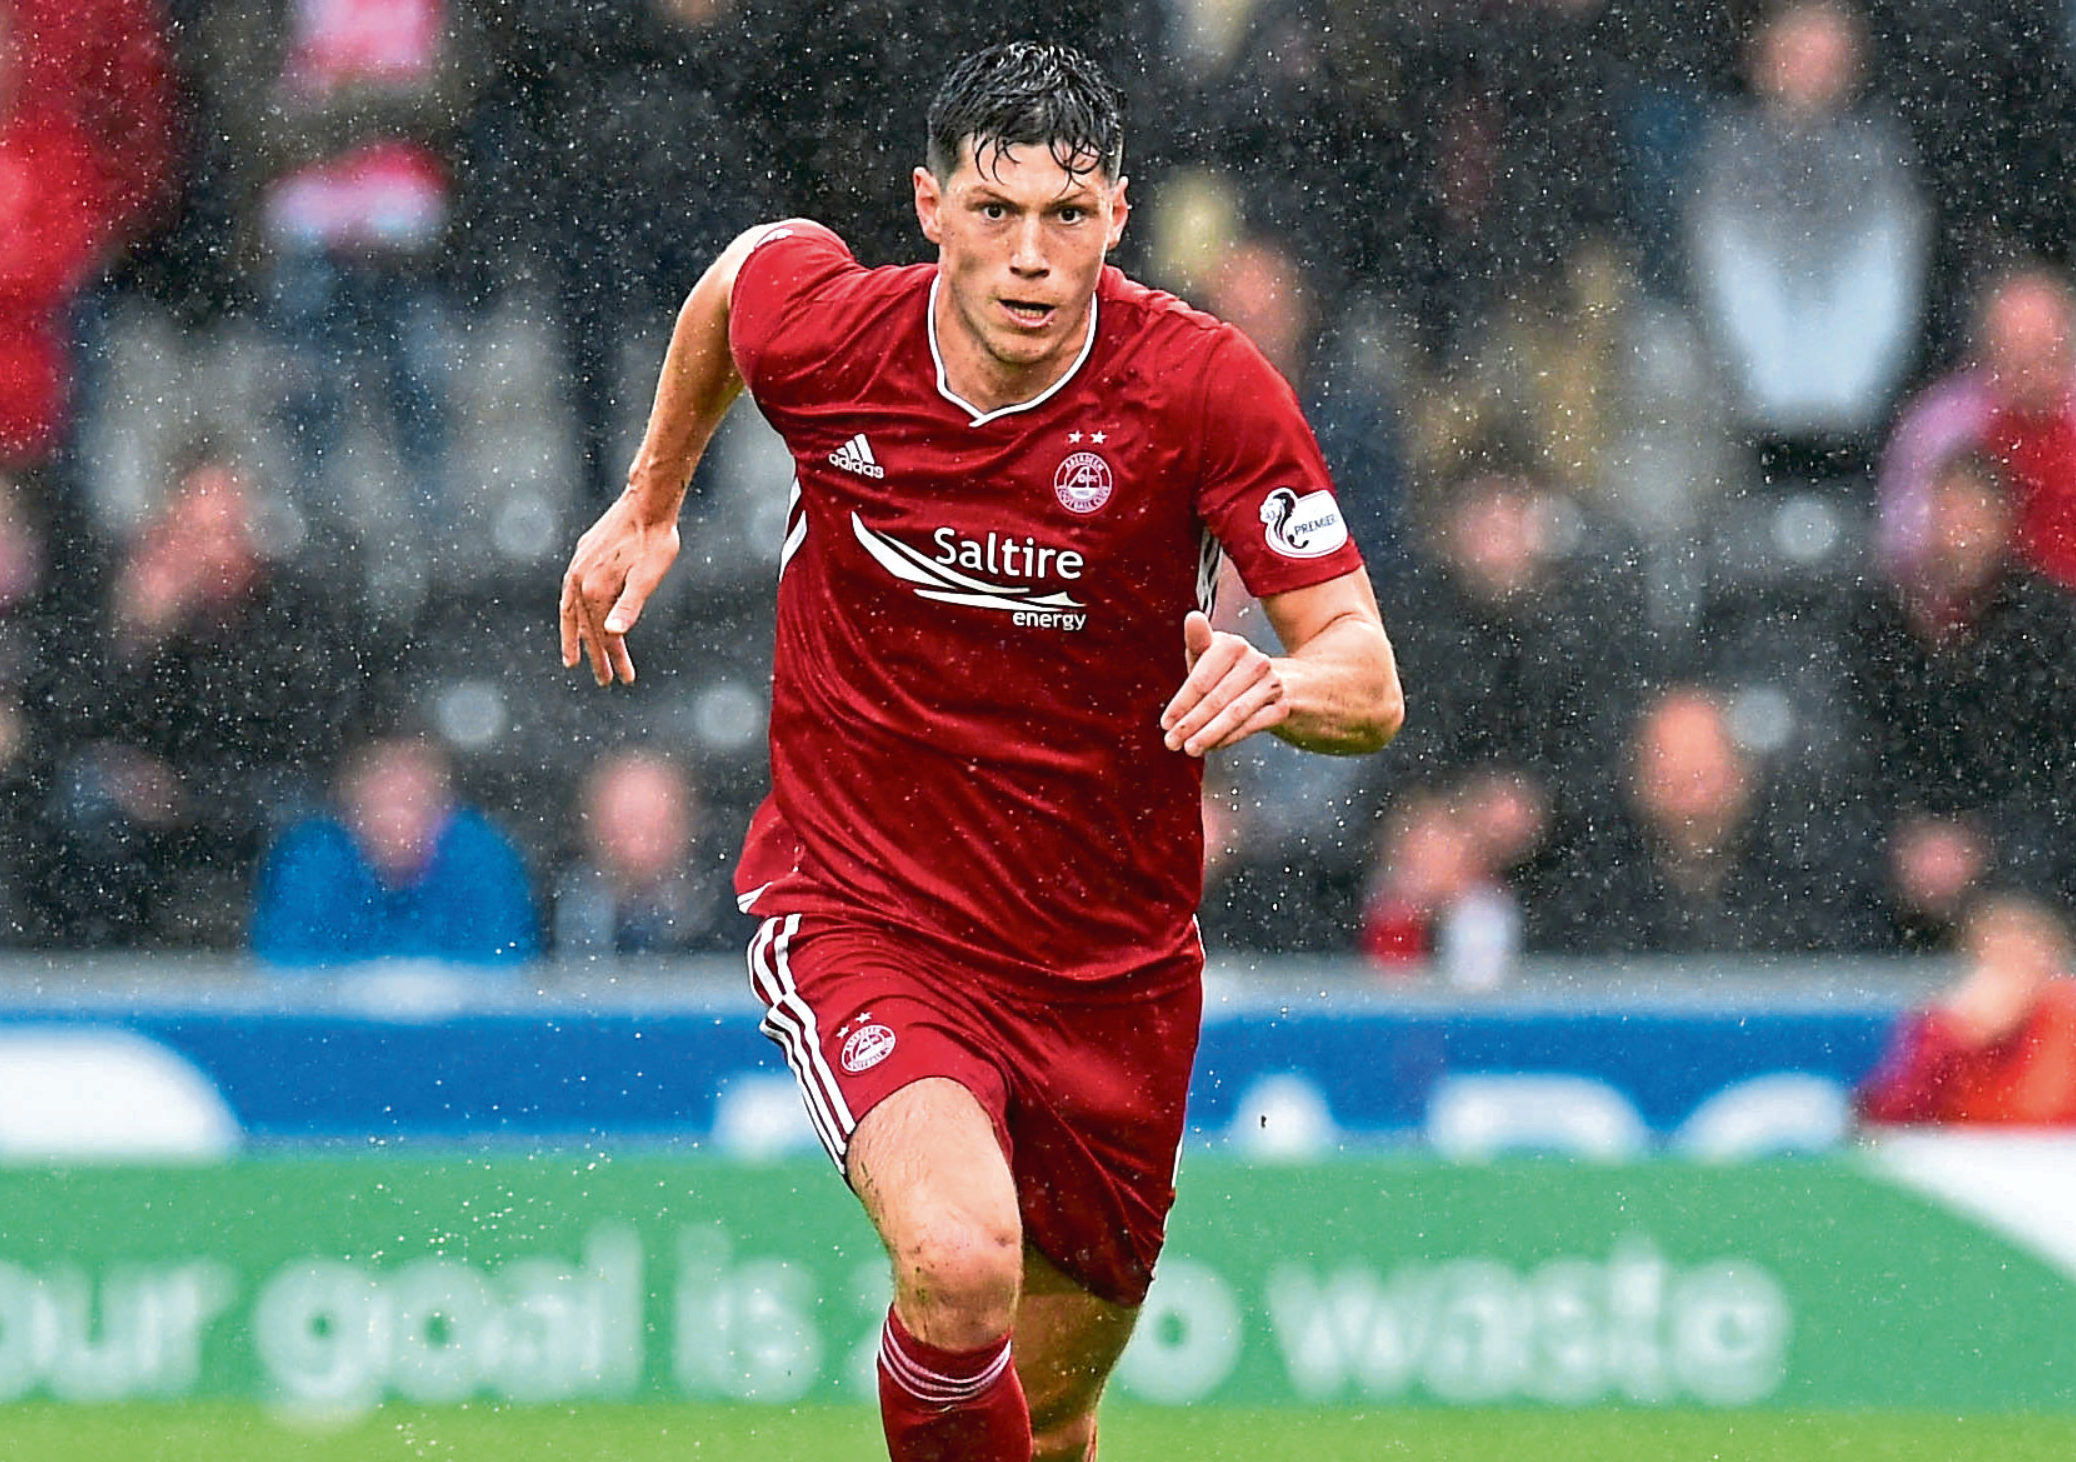 Aberdeen's Scott McKenna called the boys to thank them for their efforts